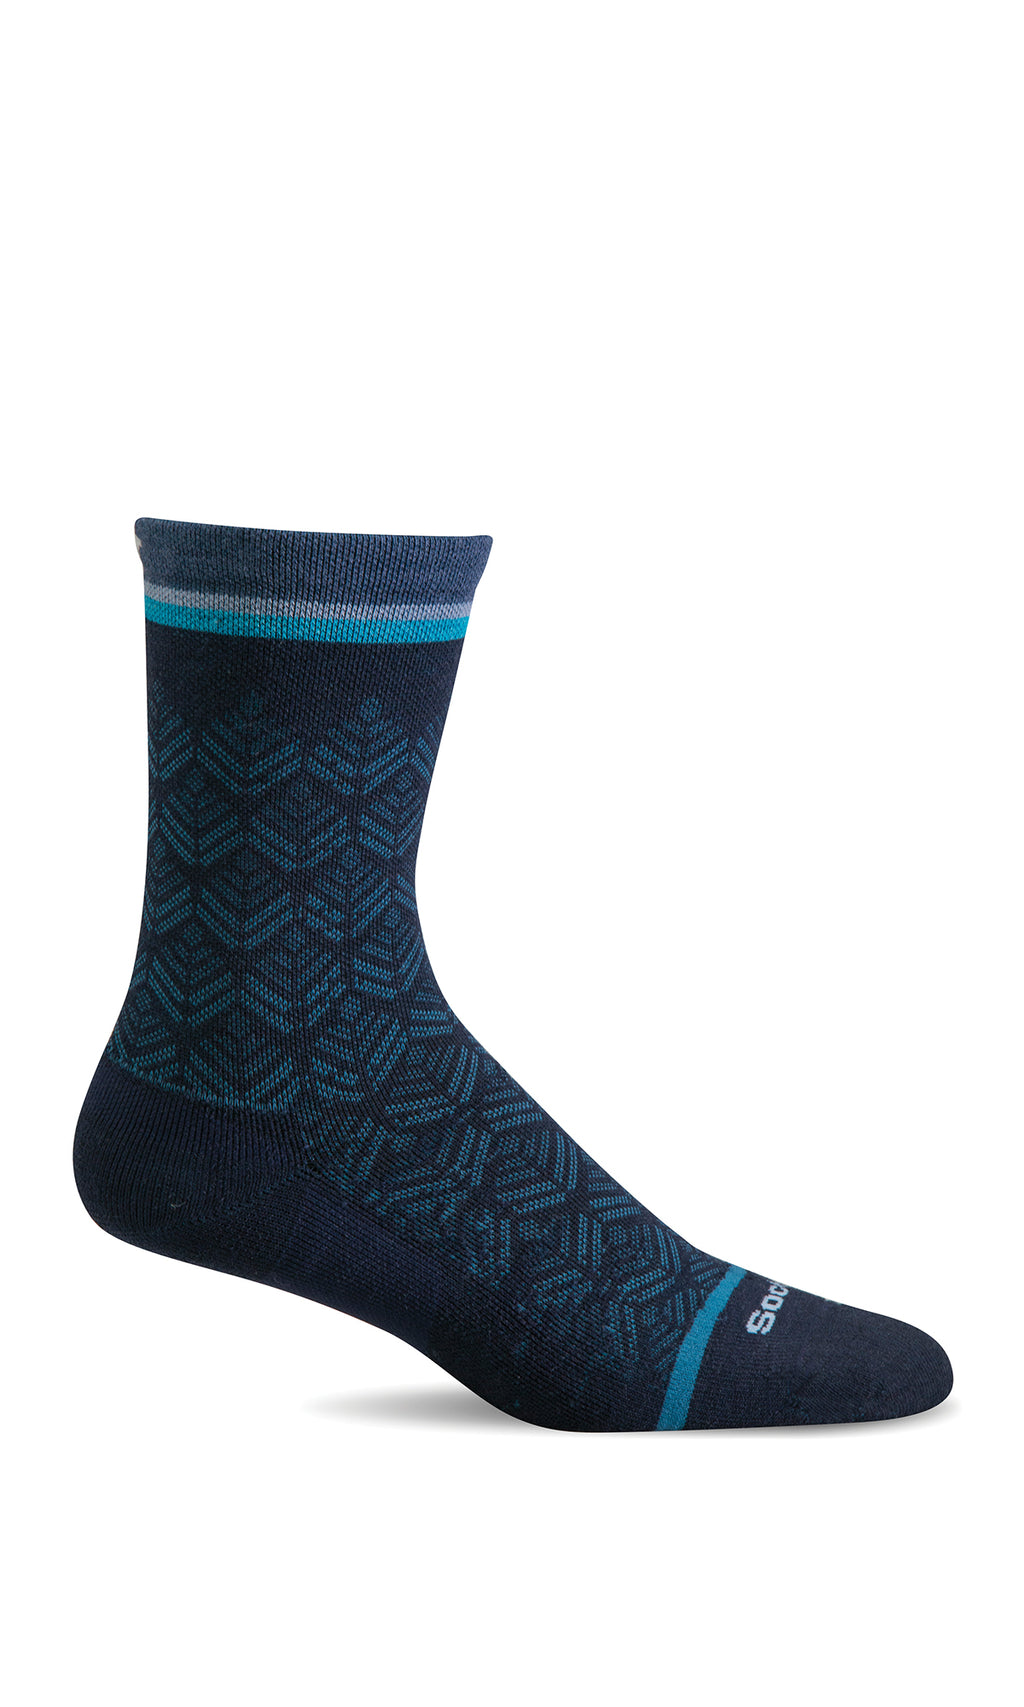 women's bunion crew lifestyle compression sock